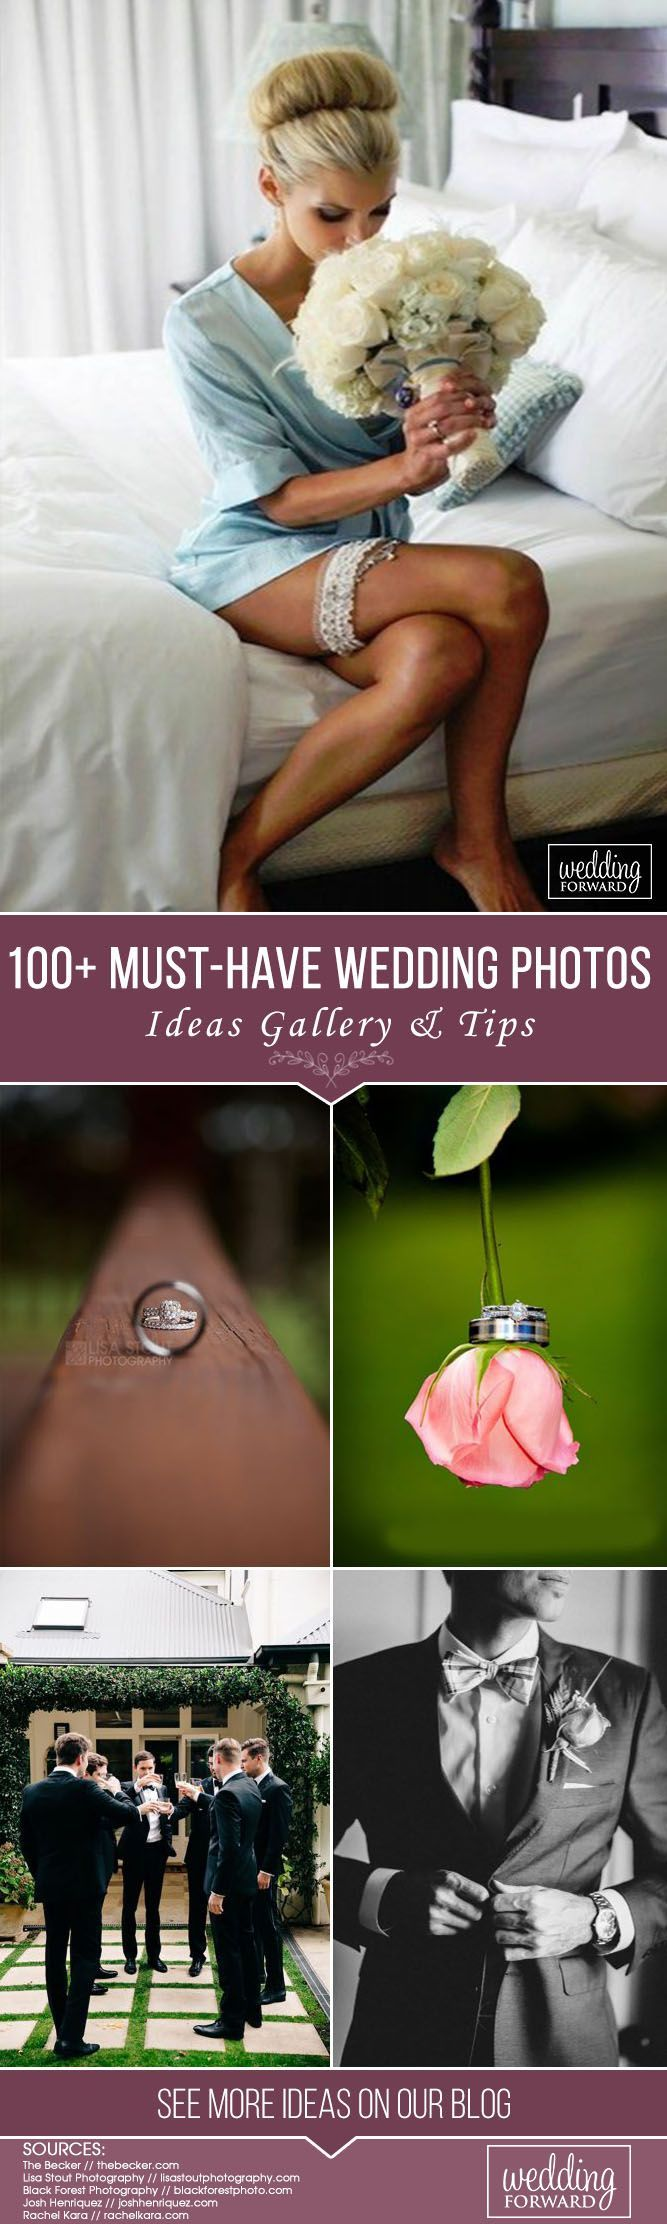 Gallery of absolutely must-have wedding photos to have in your wedding pictures album. Build your checklist and share these with your wedding photographer. #wedding #bride #groom